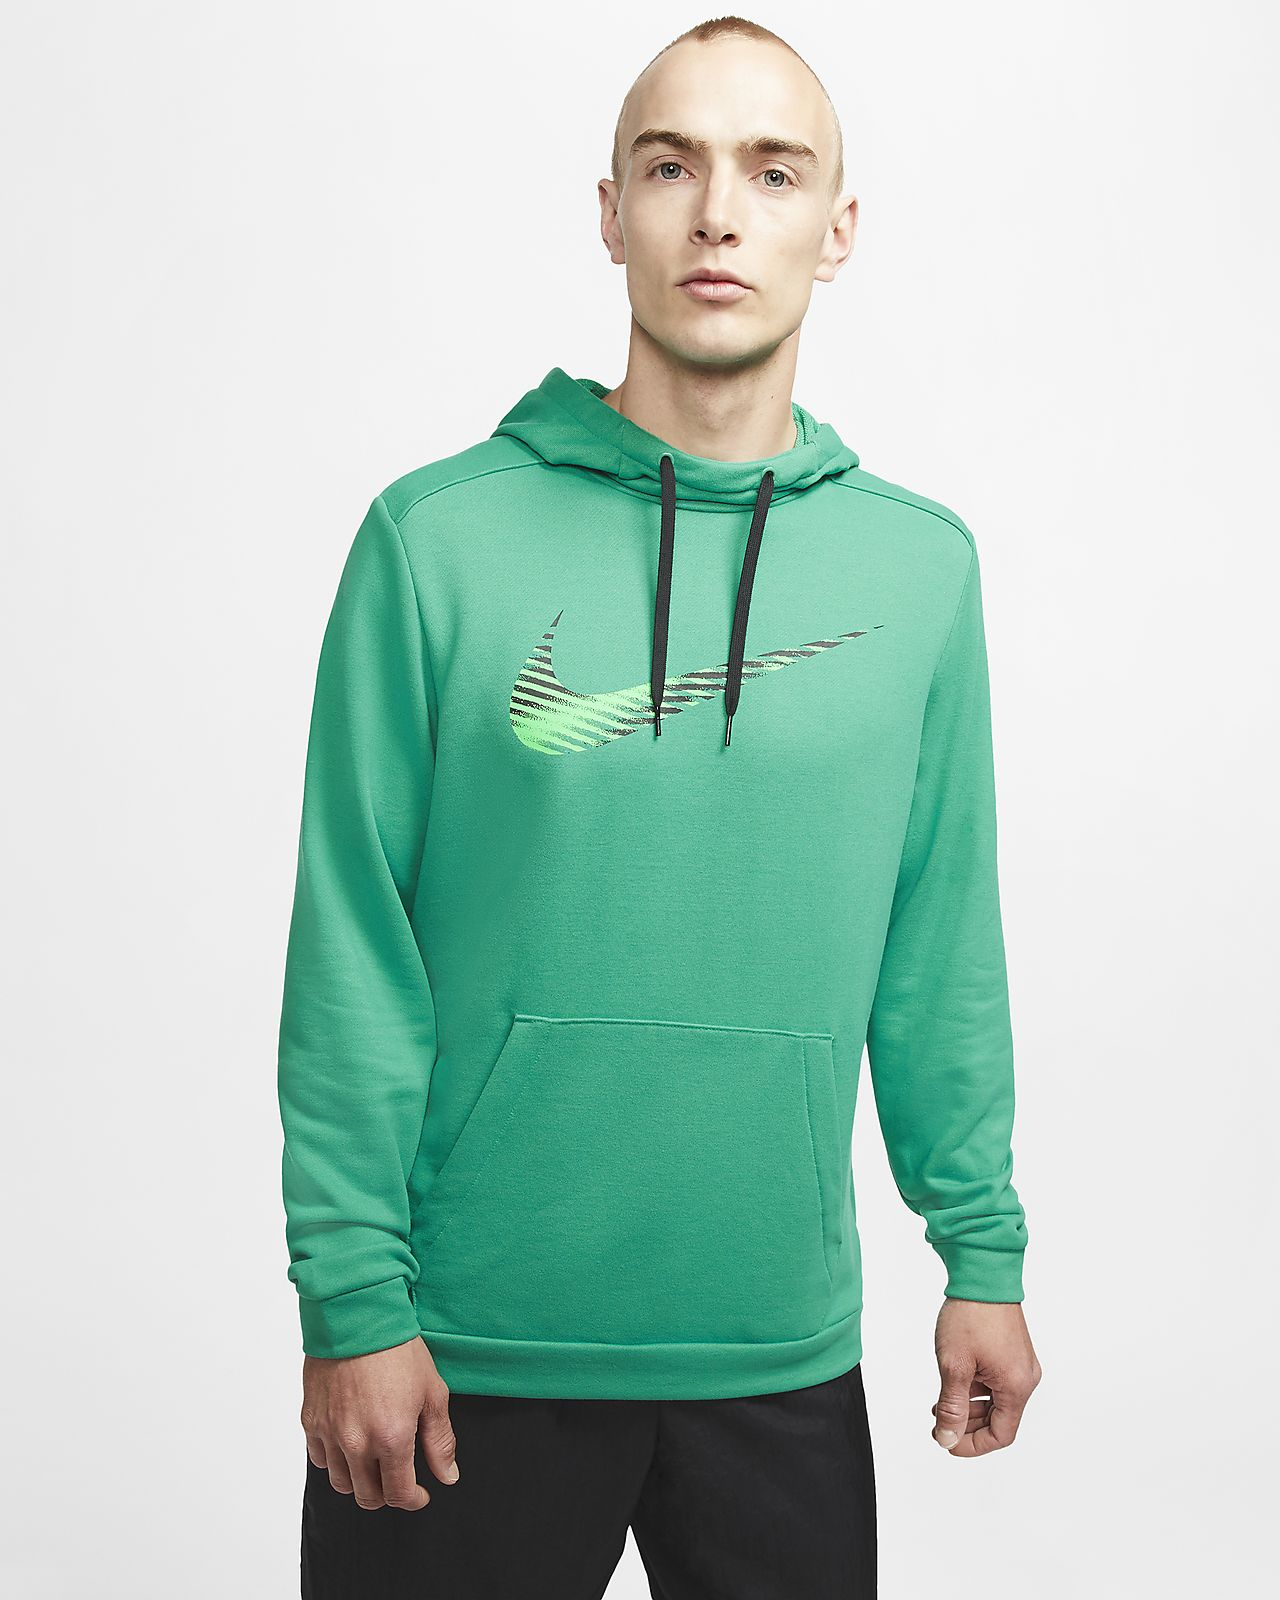 Nike Dri FIT Men's Pullover Training Hoodie